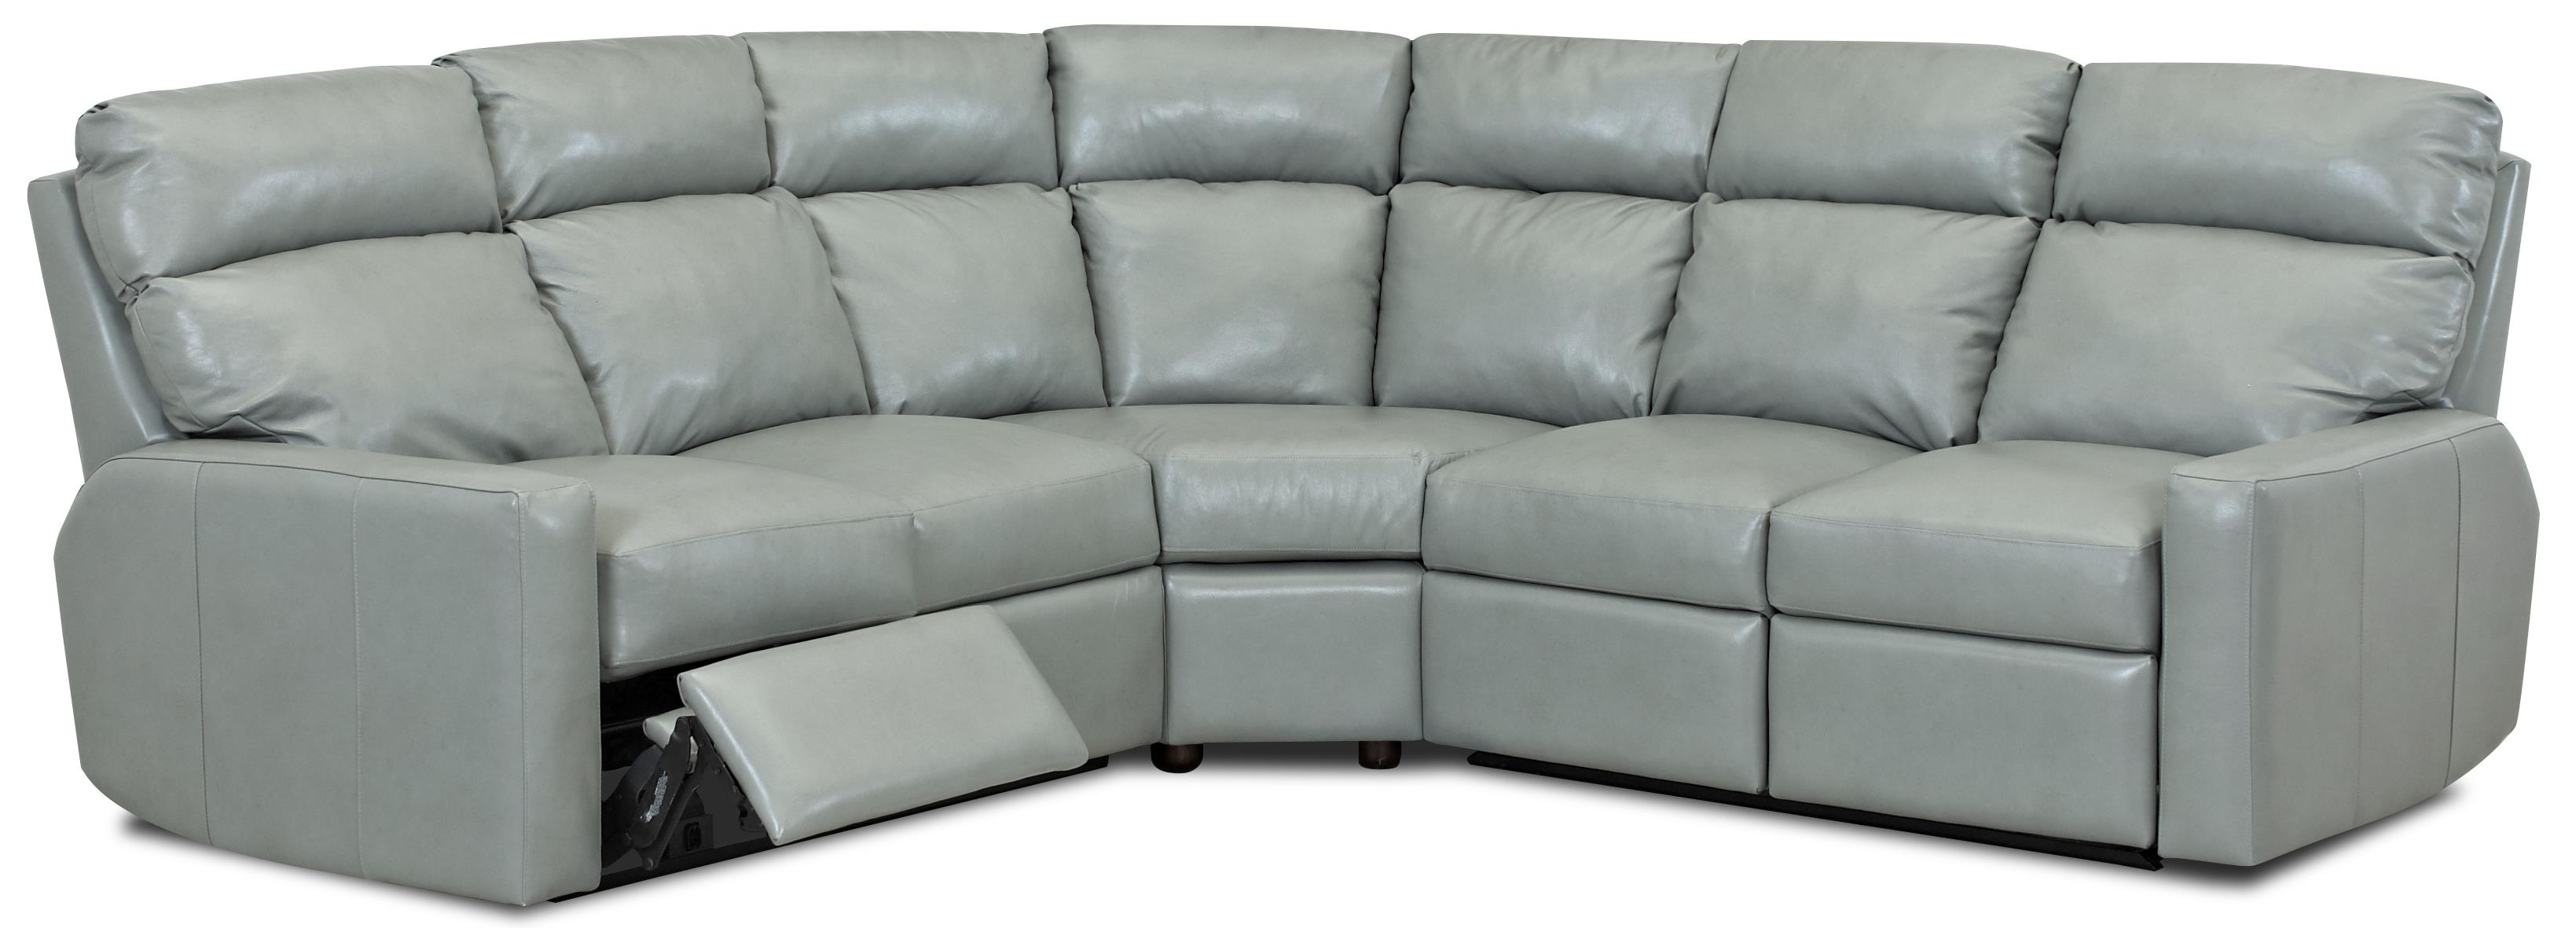 Ausie II Sectional Sofa Group by Comfort Design at Lagniappe Home Store